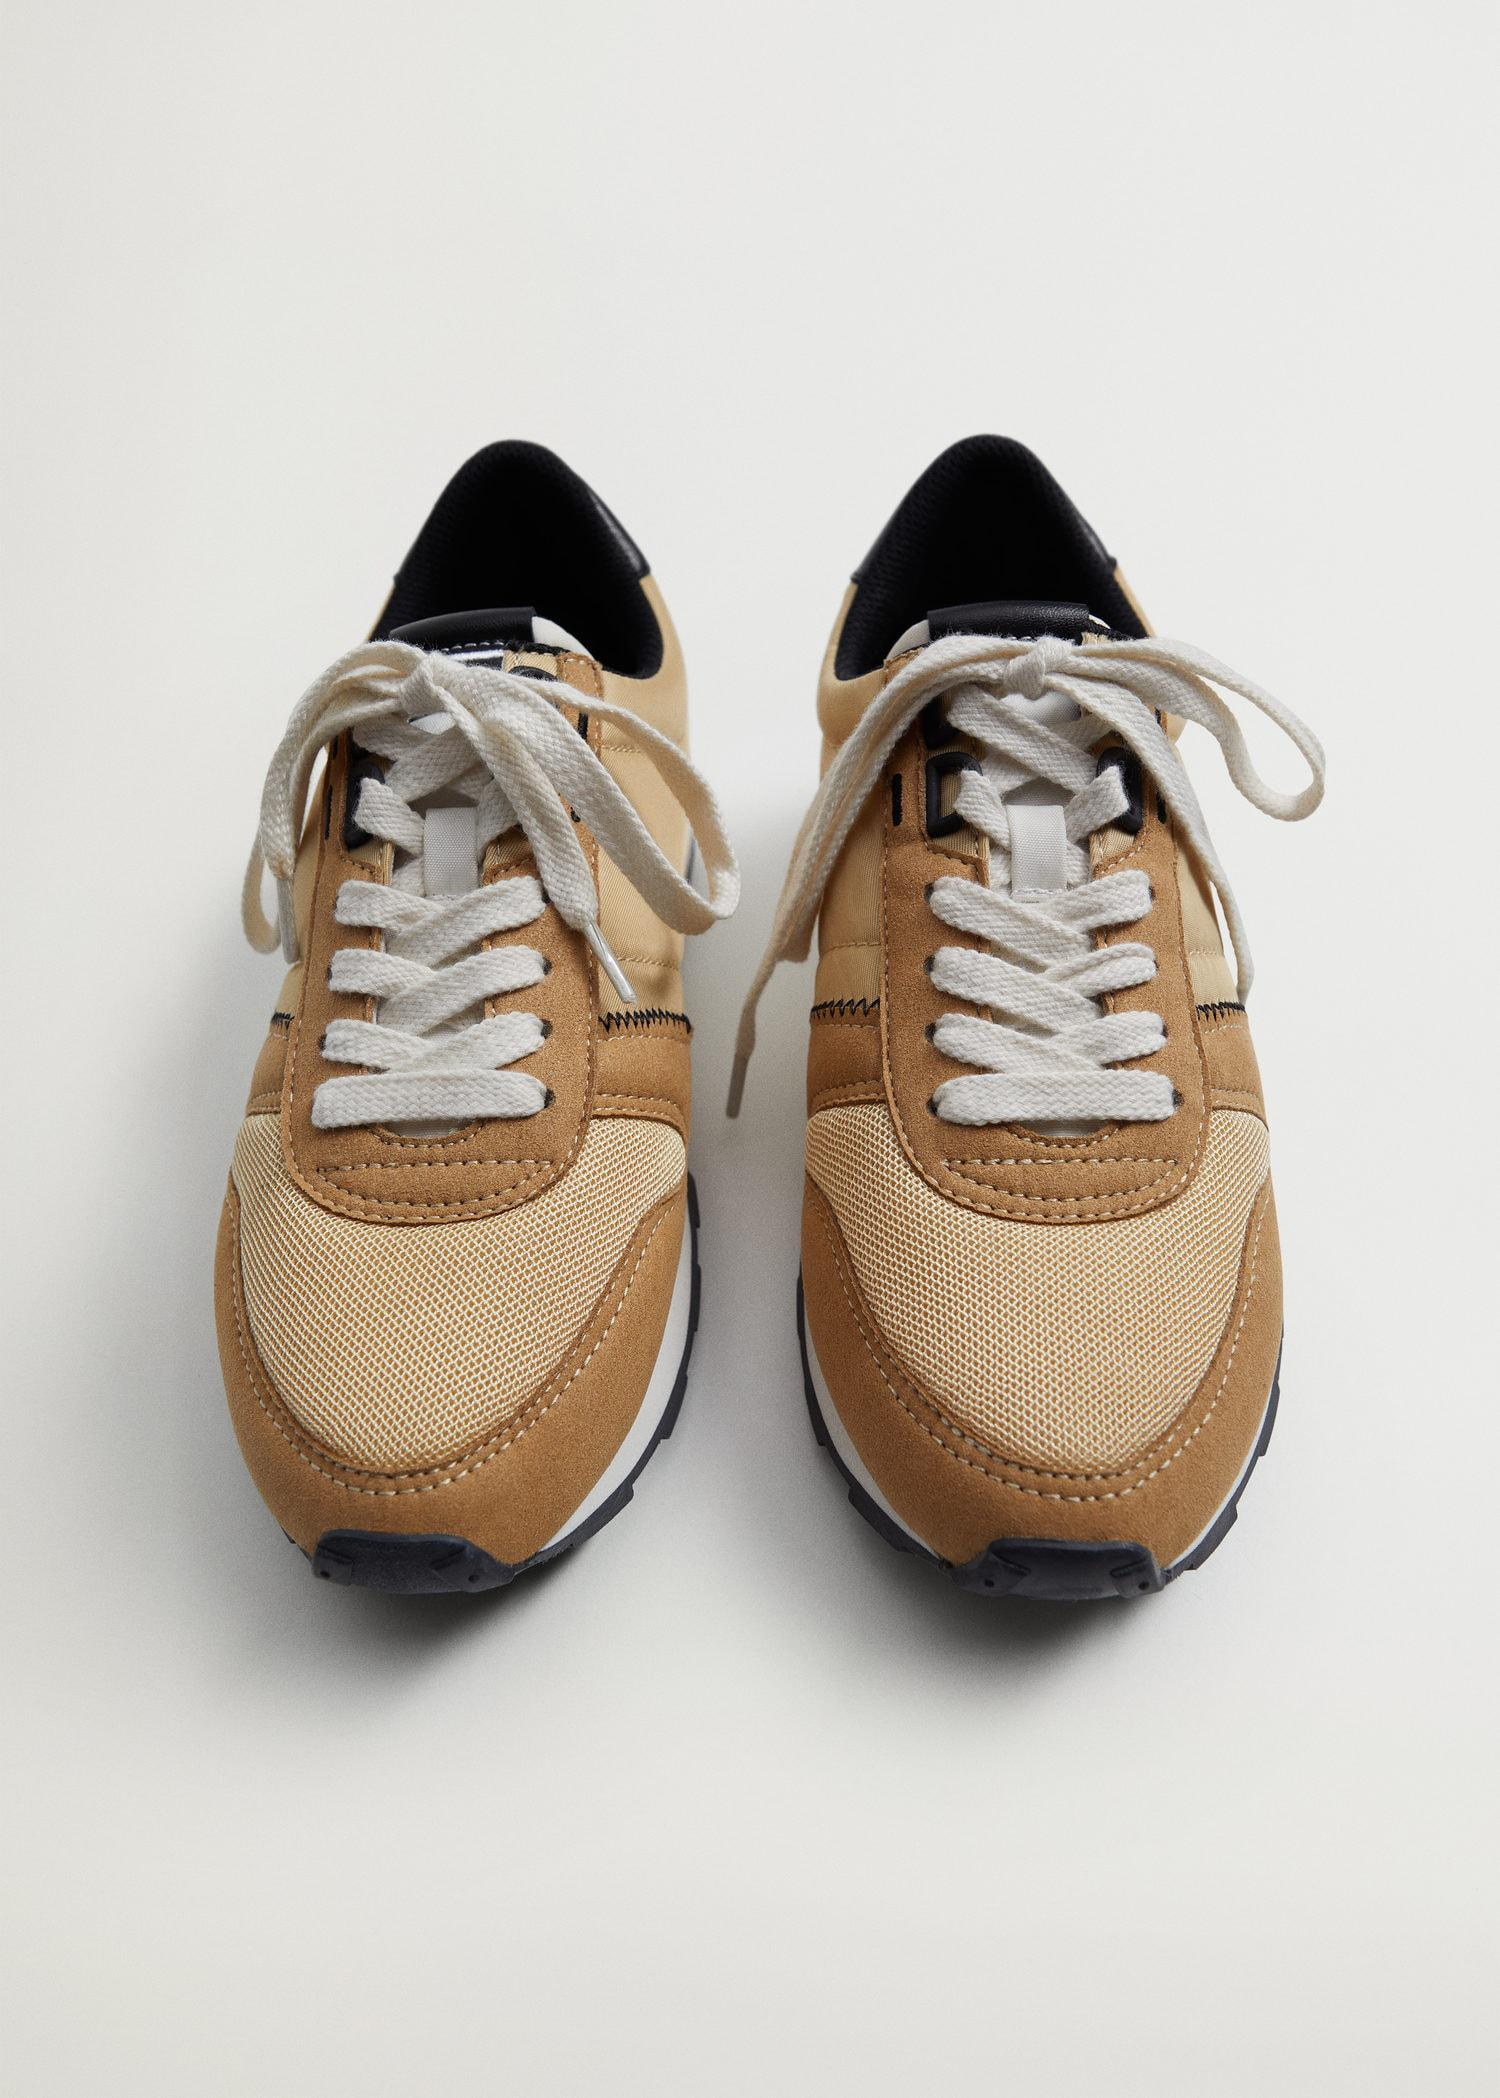 Platform lace-up sneakers